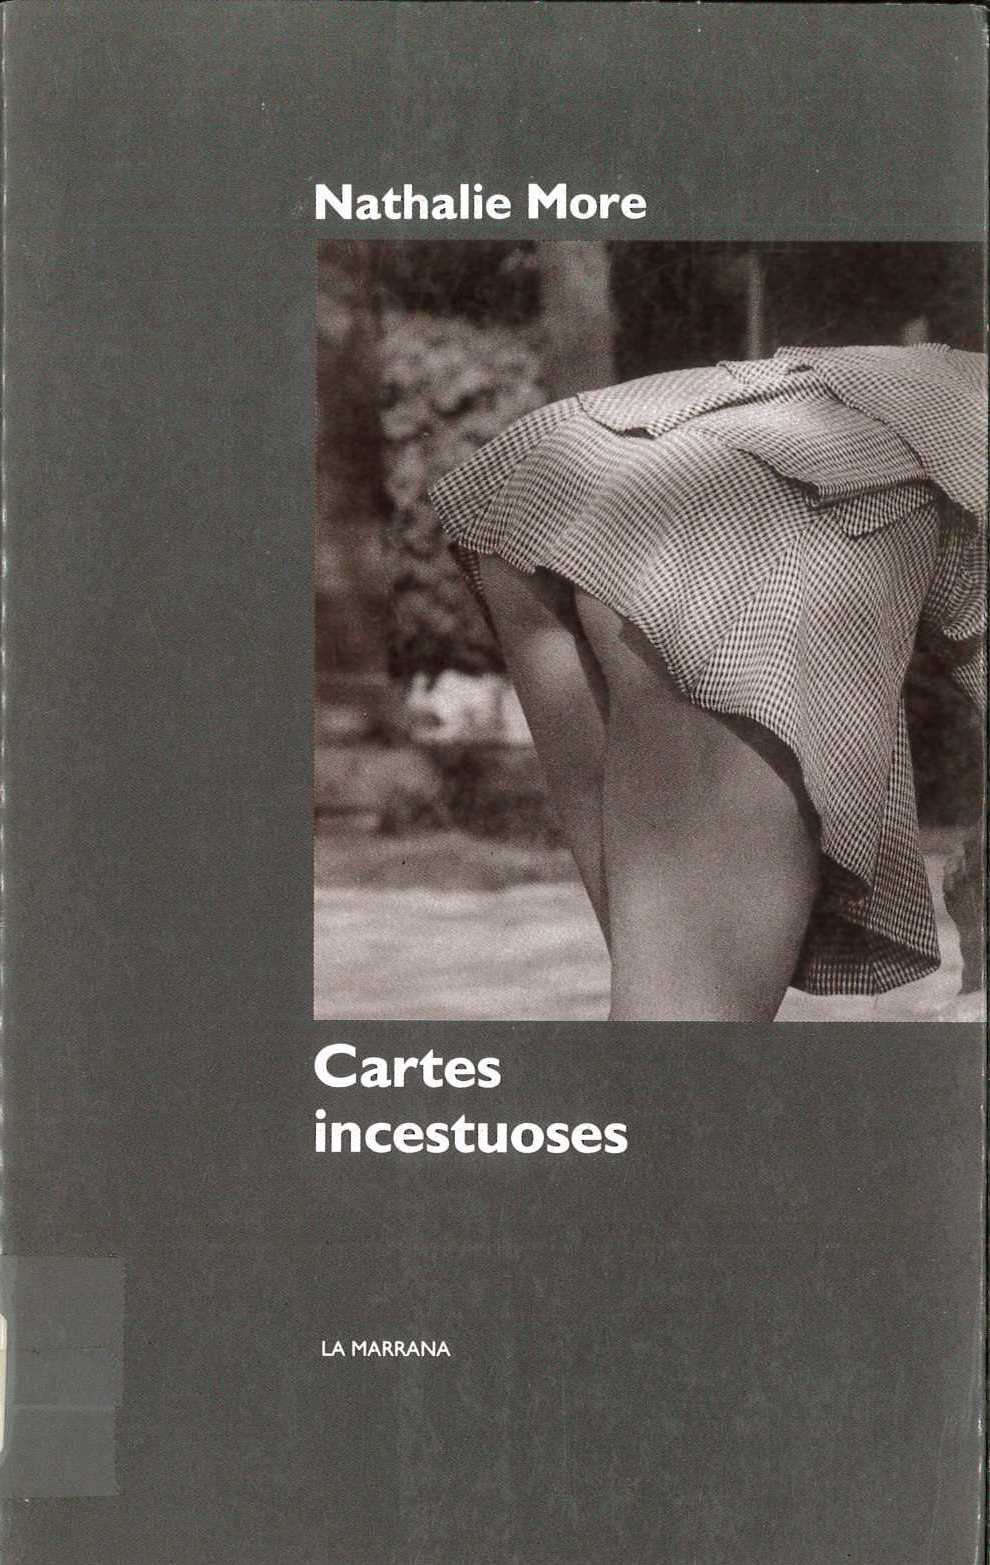 Cartes incestuoses